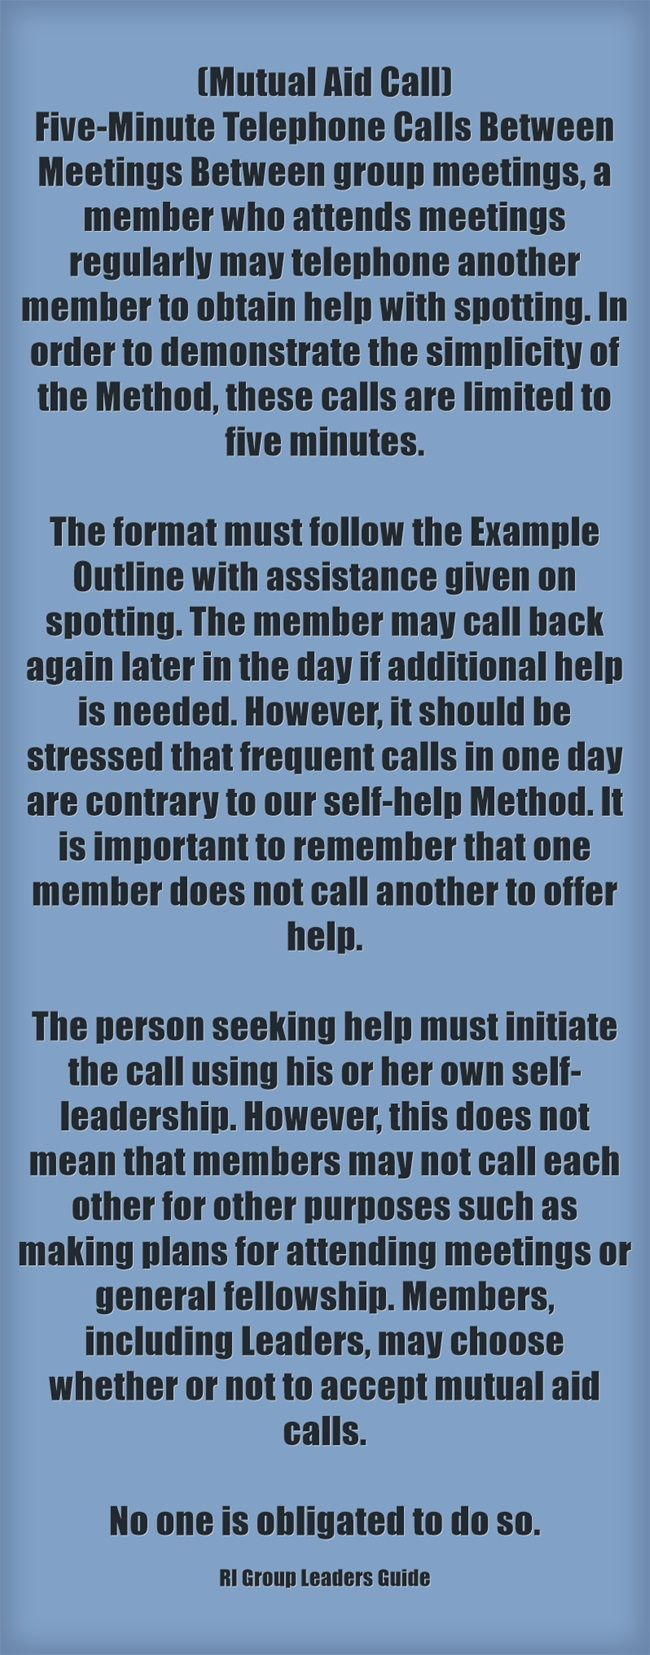 (Mutual Aid Call) Five-Minute Telephone Calls Between Meetings Between group meetings, a member who attends meetings regularly may telephone another member to obtain help with spotting. In order to demonstrate the simplicity of the Method, these calls are limited to five minutes.  The format must follow the Example Outline with assistance given on spotting. The member may call back again later in the day if additional help is needed. However, it should be stressed that...